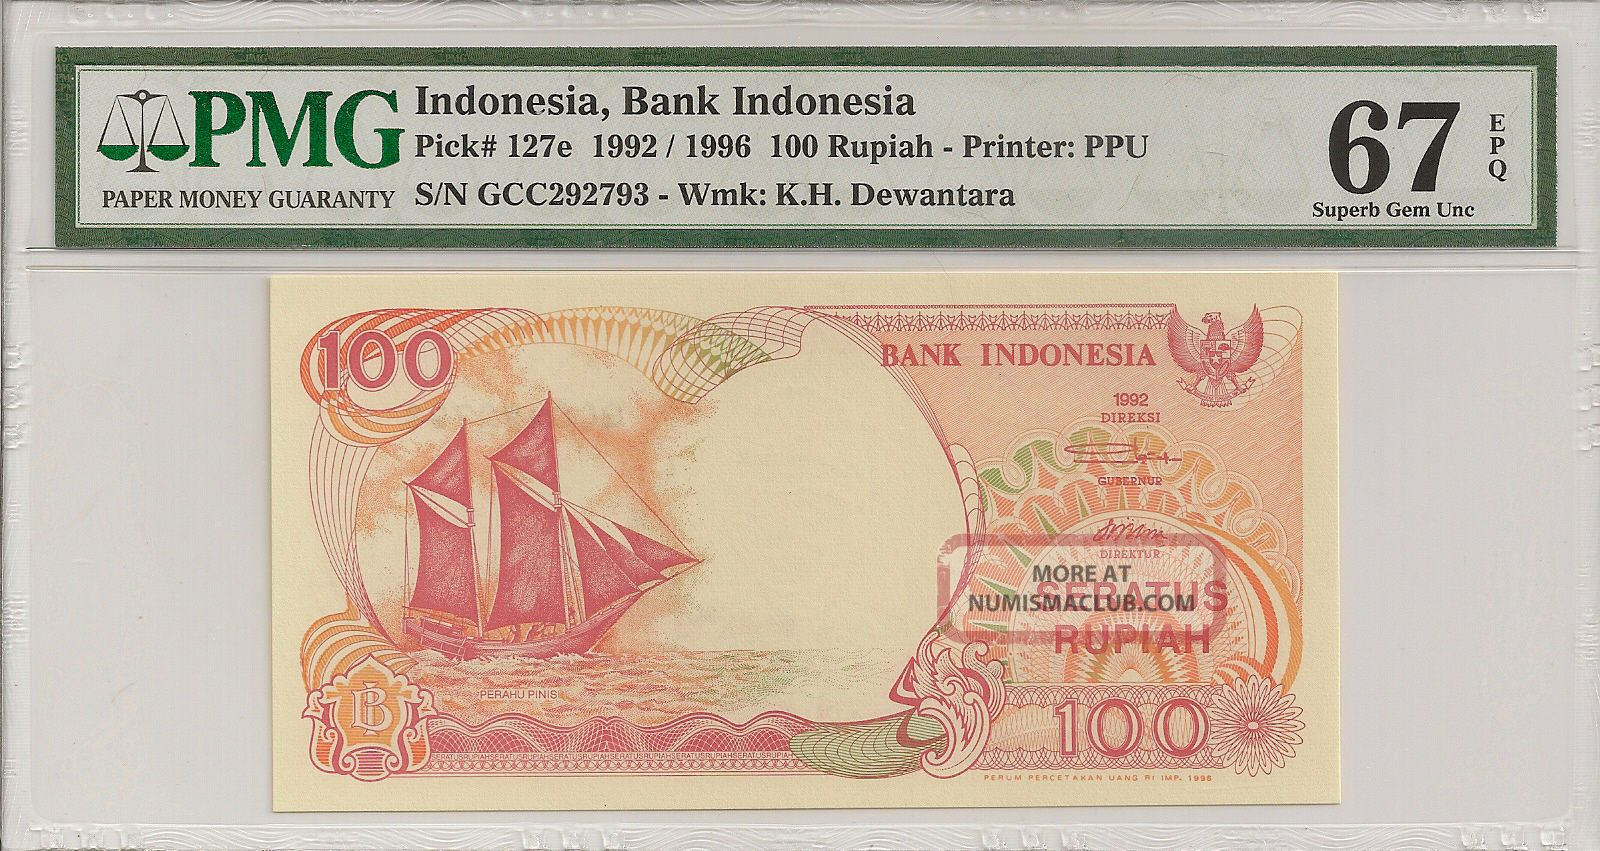 P - 127e 1992/1996 100 Rupiah,  Bank Of Indonesia,  Pmg 67epq Finest Known Asia photo